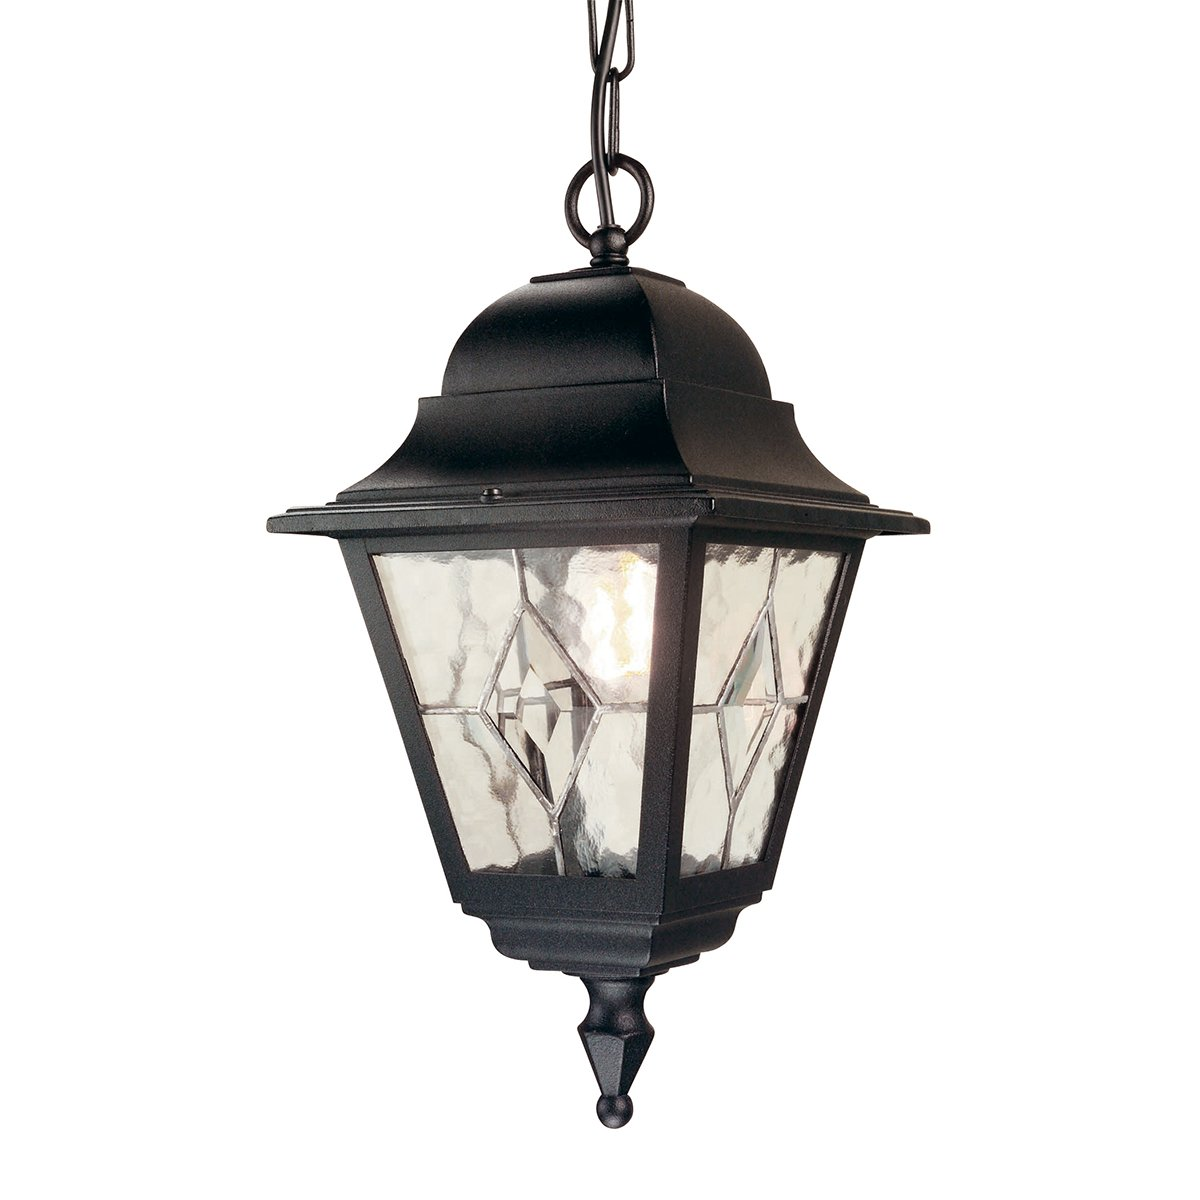 Elstead NR9 Norfolk Chain Leaded Lantern in Black